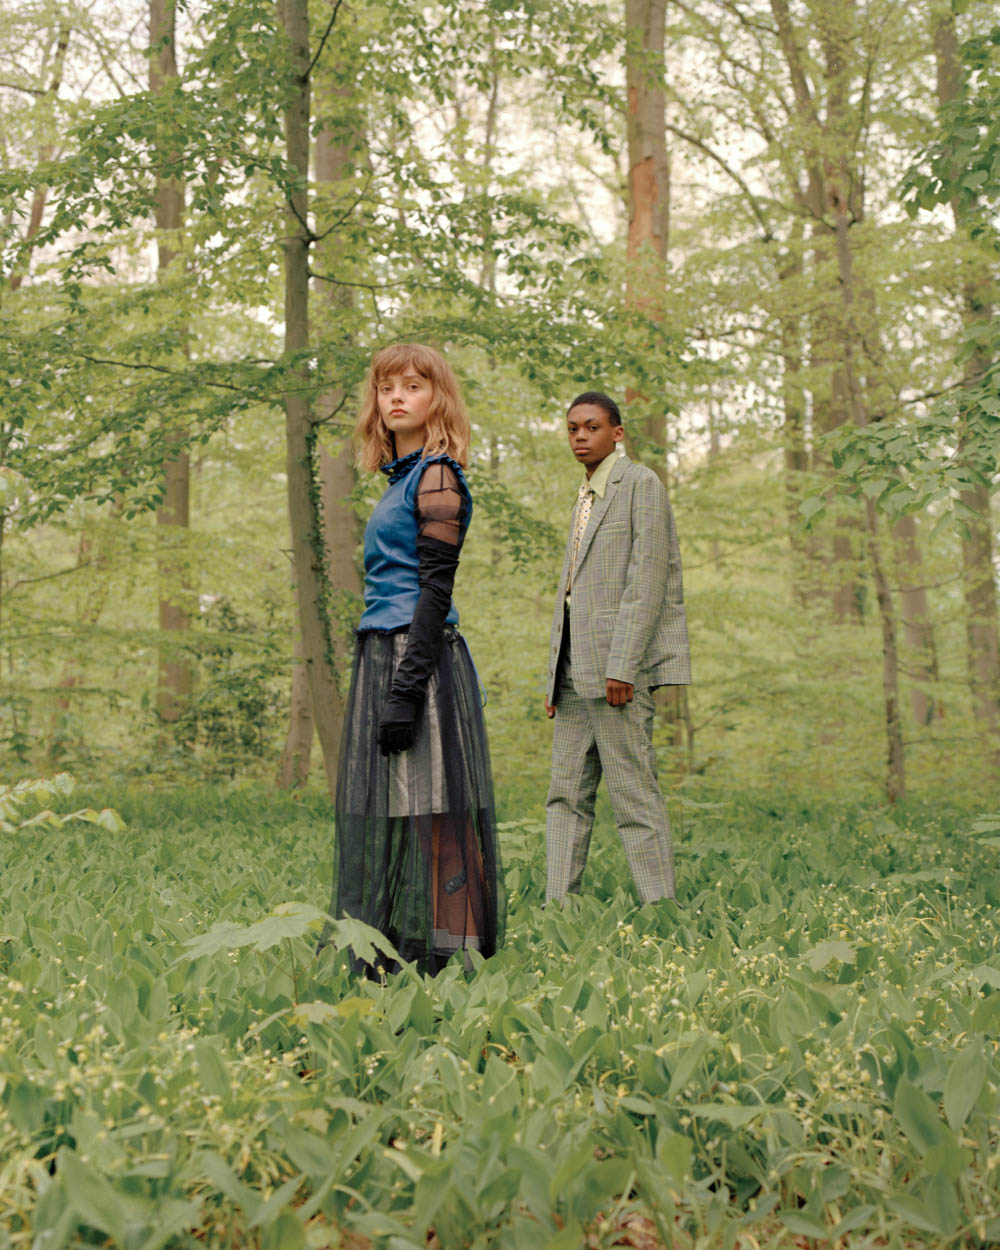 Maja wears top   PREEN   dress   MONKI   gloves   TOGA PULLA   skirt   PREEN   shoes   TOGA PULLA  . Jamil wears suit   JULIAN ZIGERLI   shirt   FRECKLE SEOUL   scarf     MINT VINTAGE